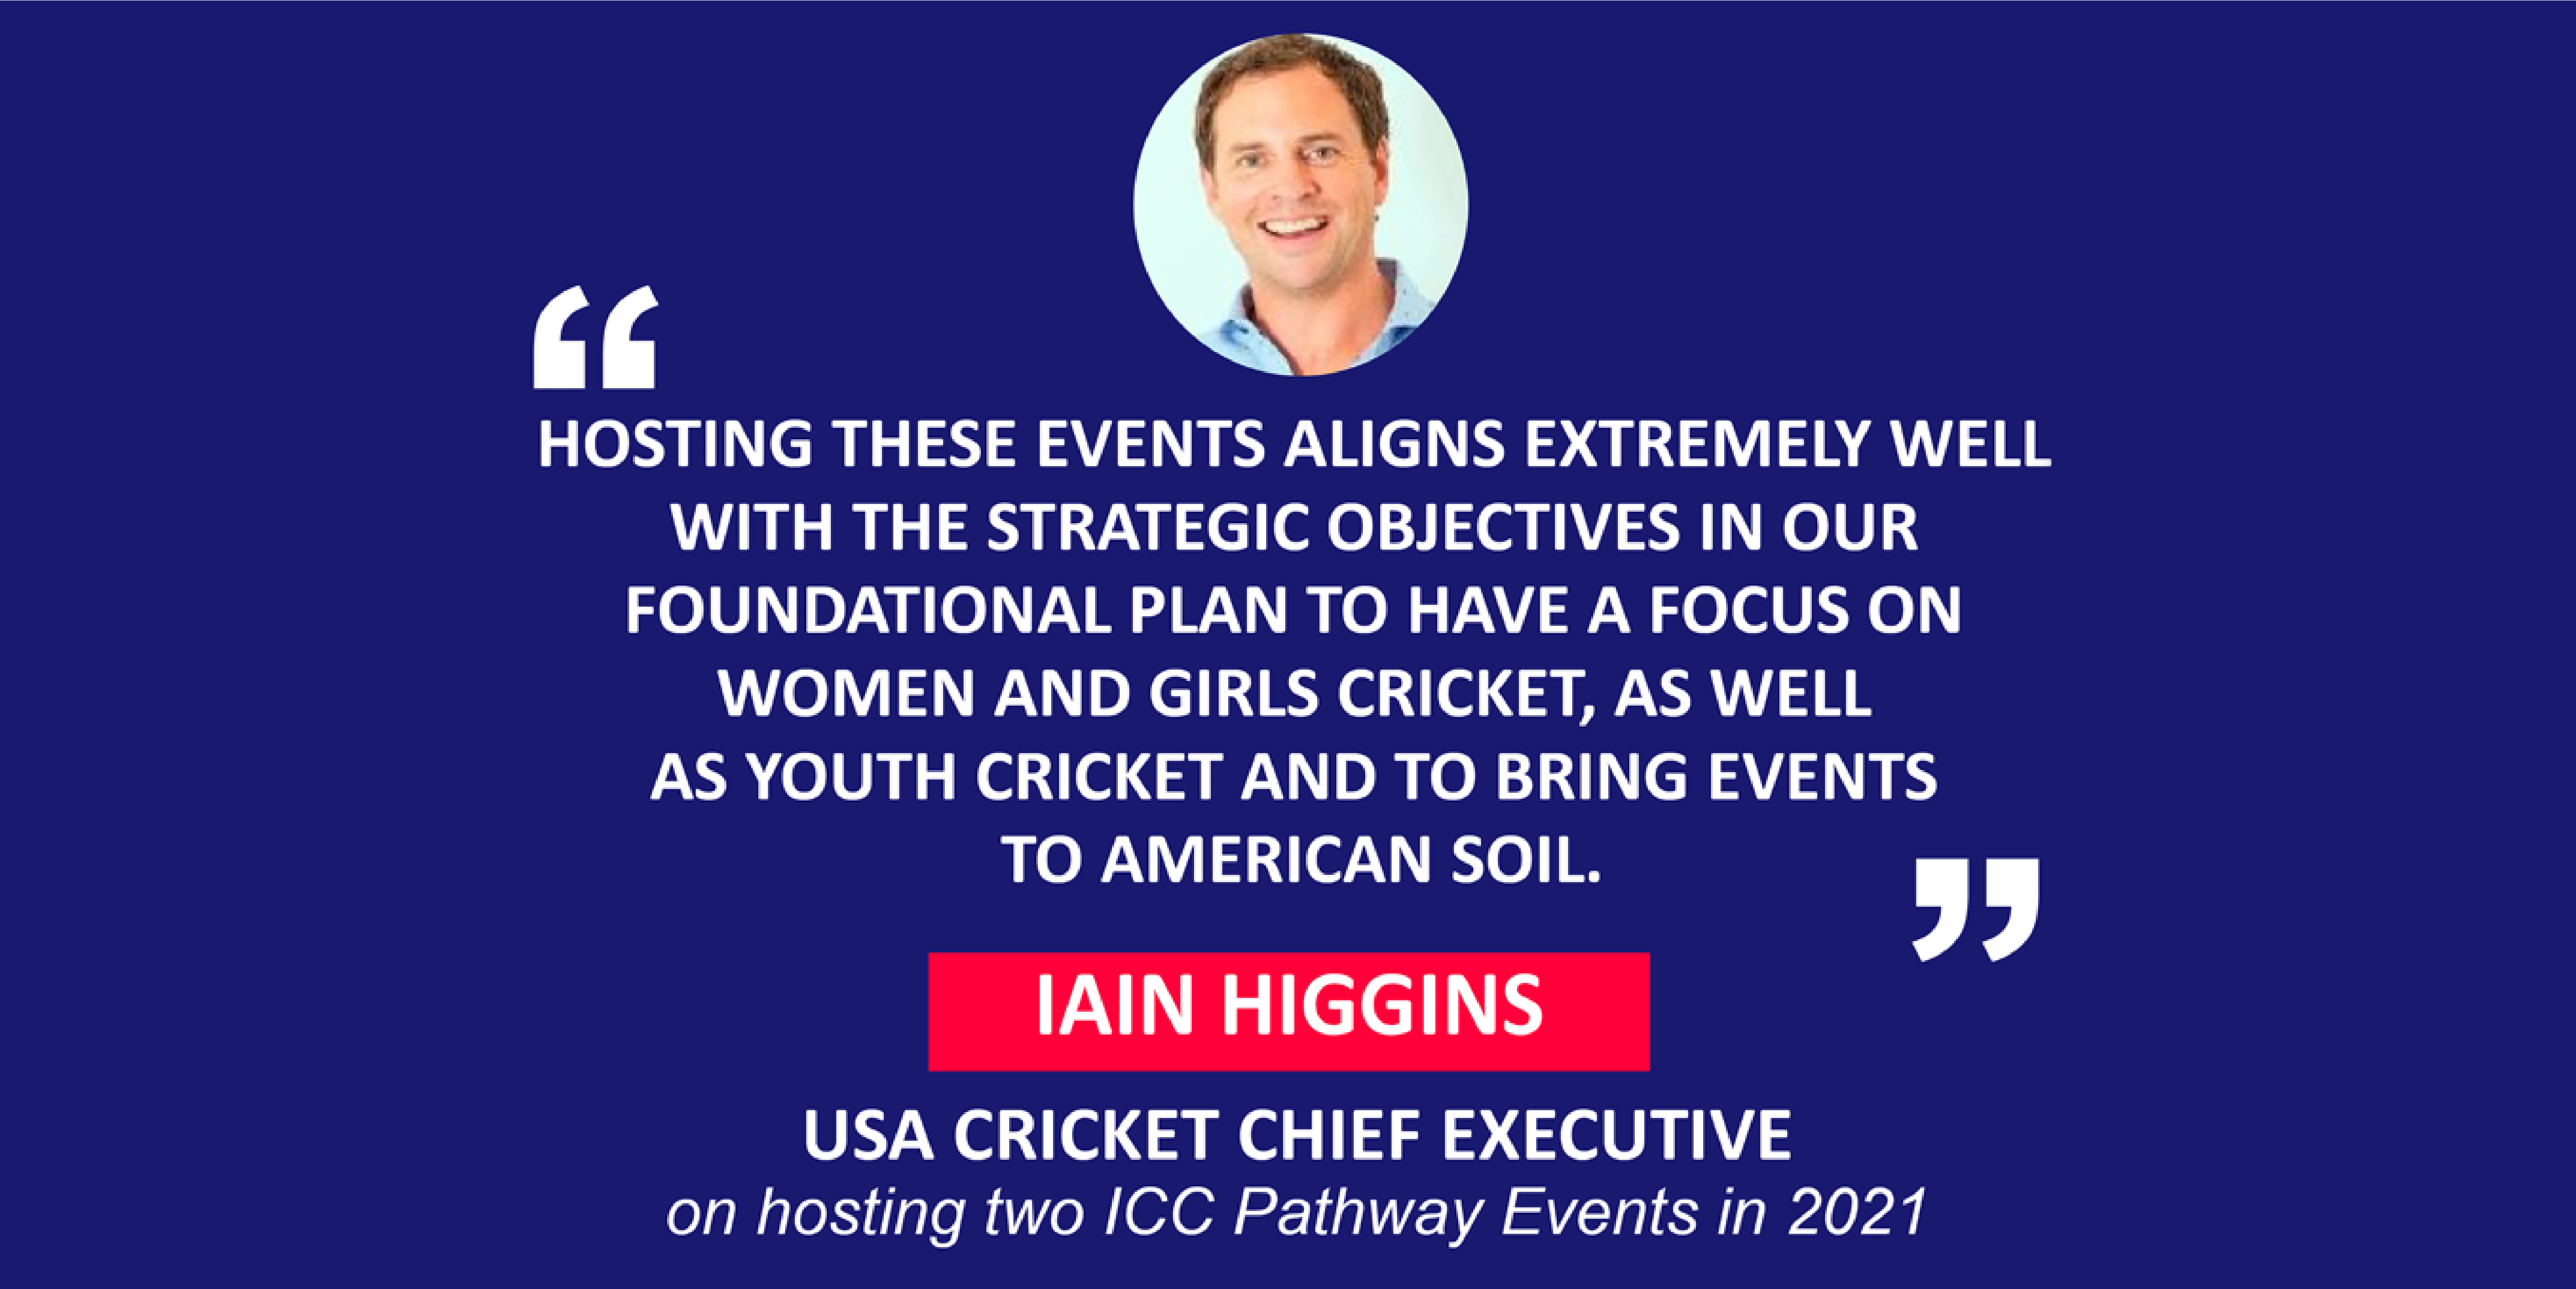 Iain Higgins, USA Cricket Chief Executive on hosting two ICC Pathway Events in 2021